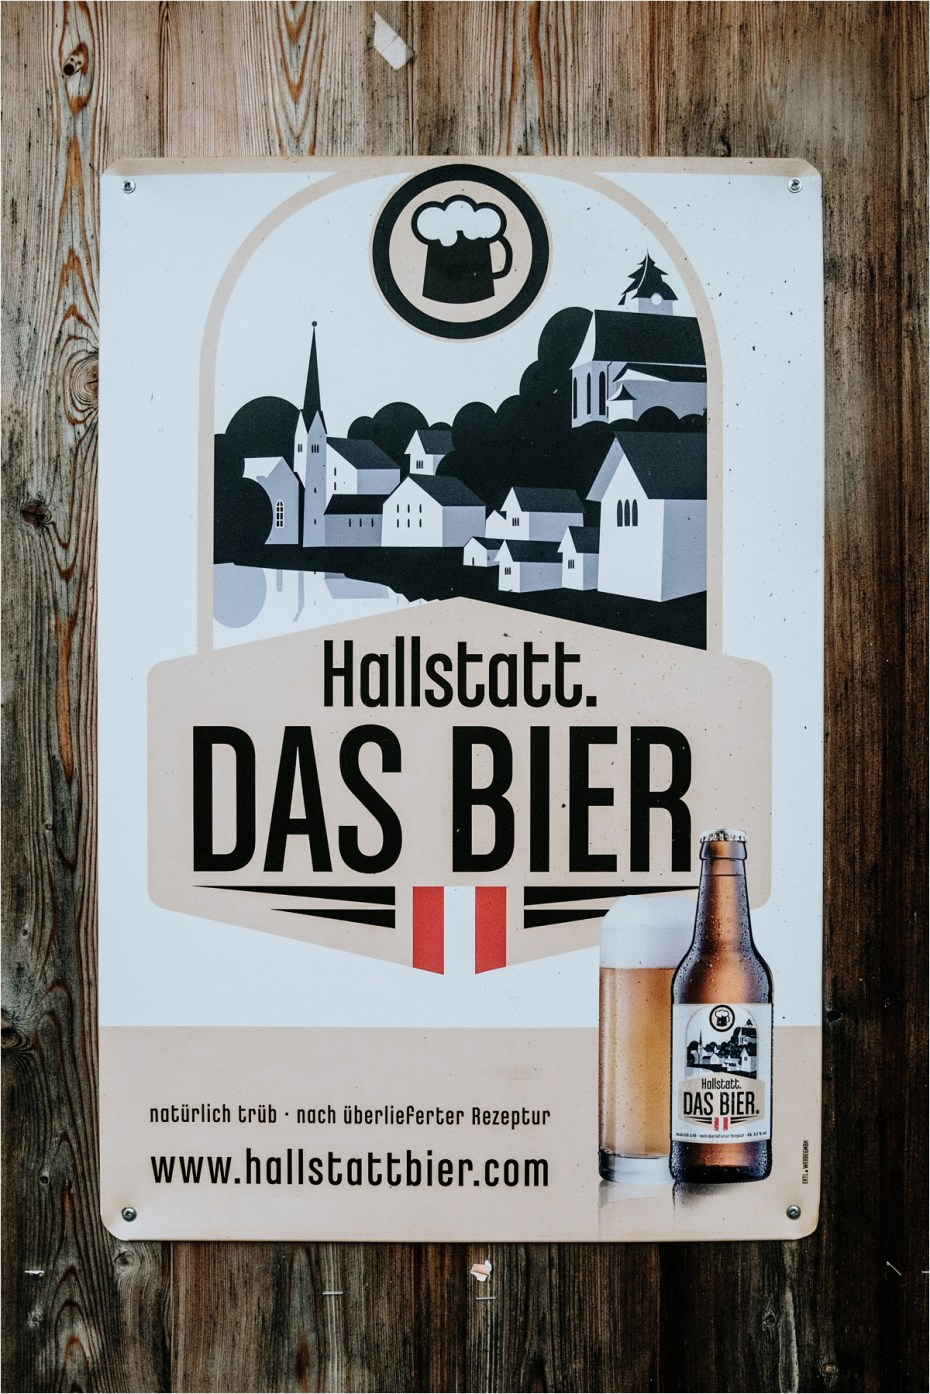 Sign for Hallstatt beer. Photos by Wild Connections Photography